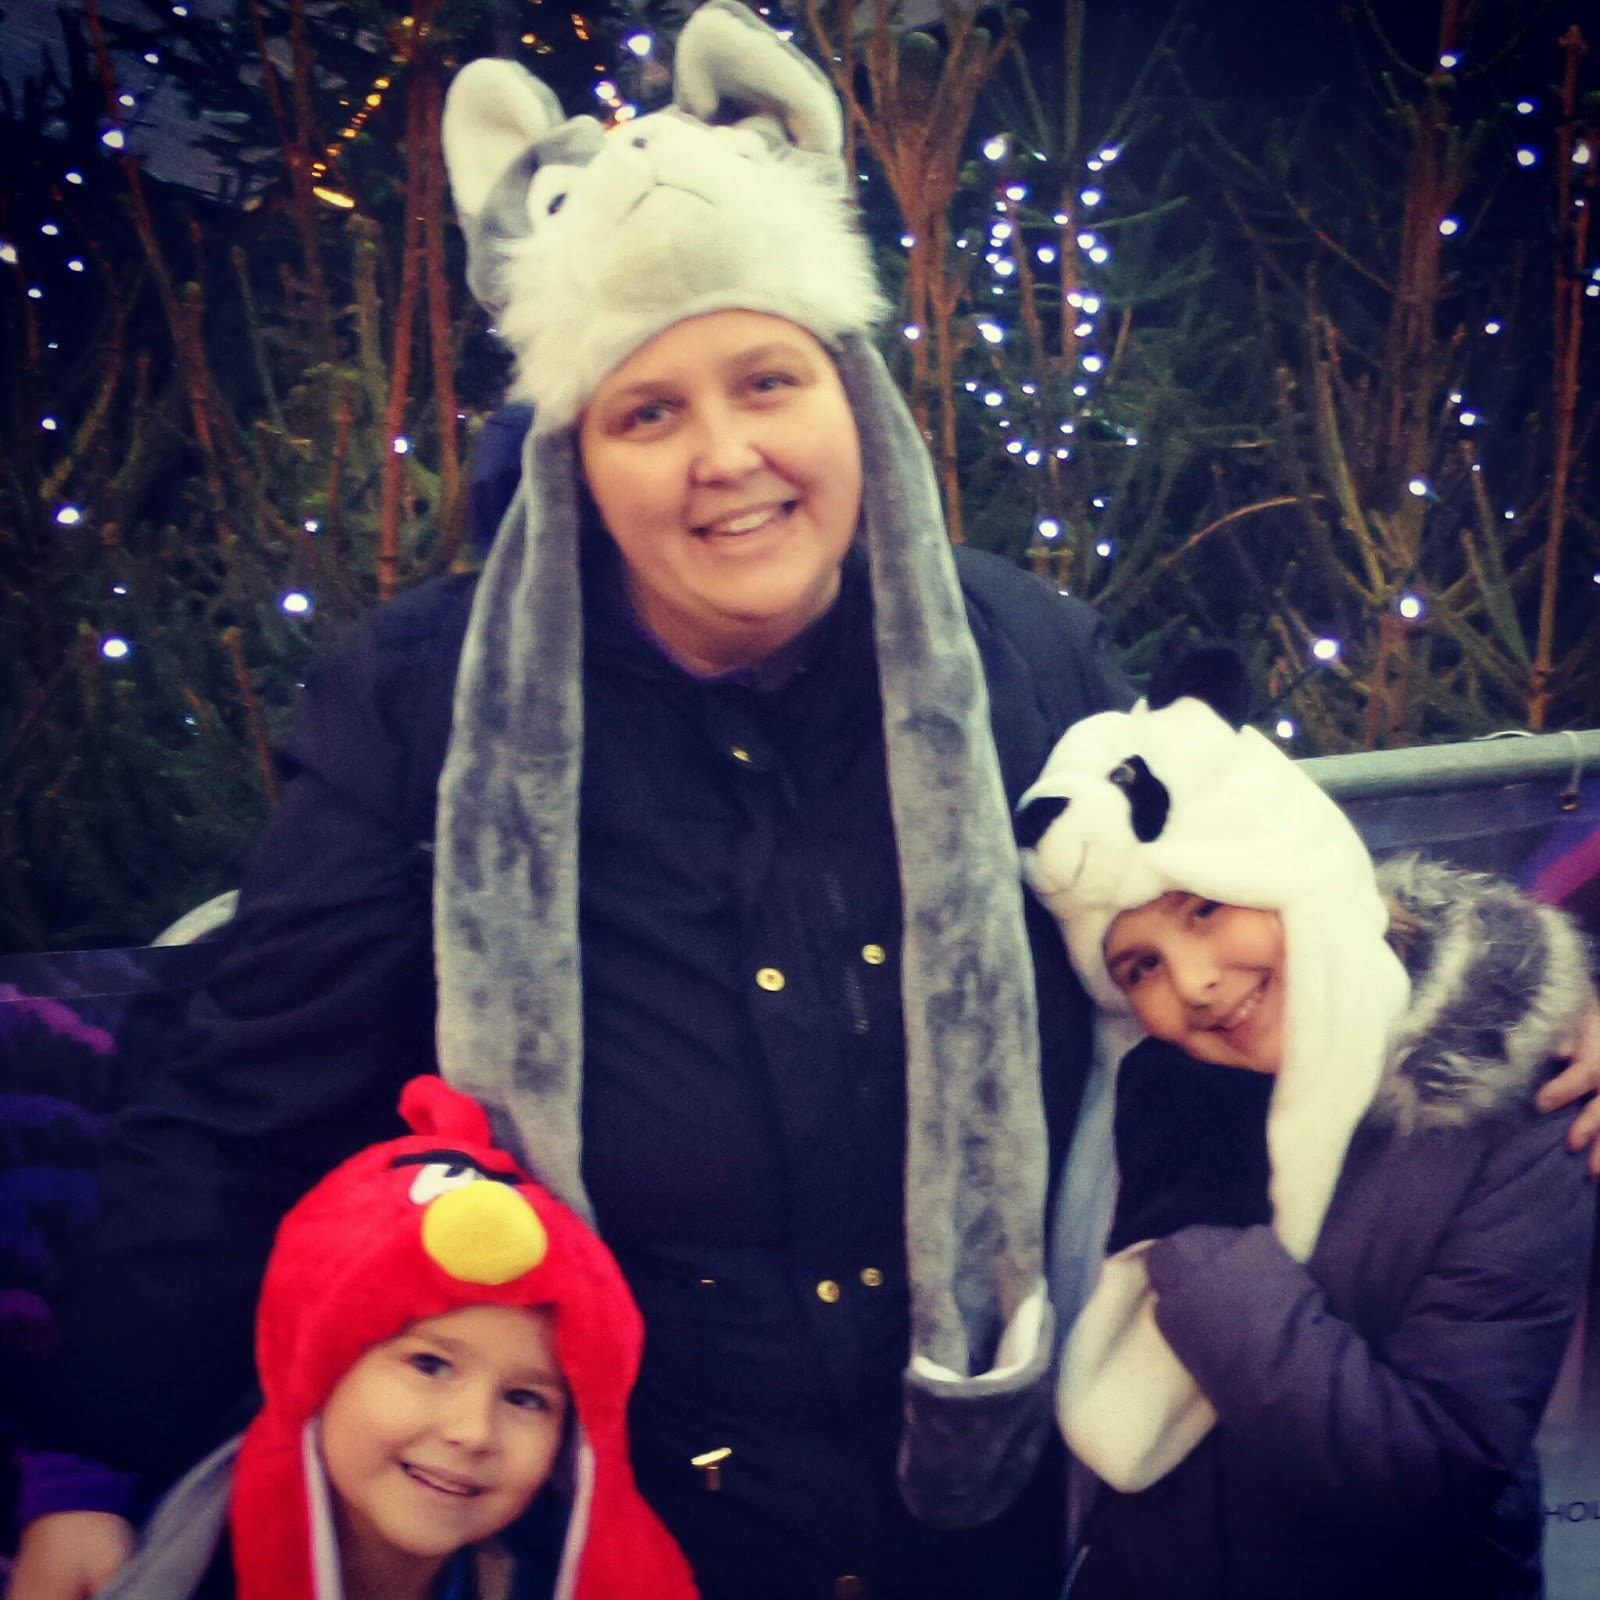 PippaD, Top Ender and Big Boy wearing their new Winter hats